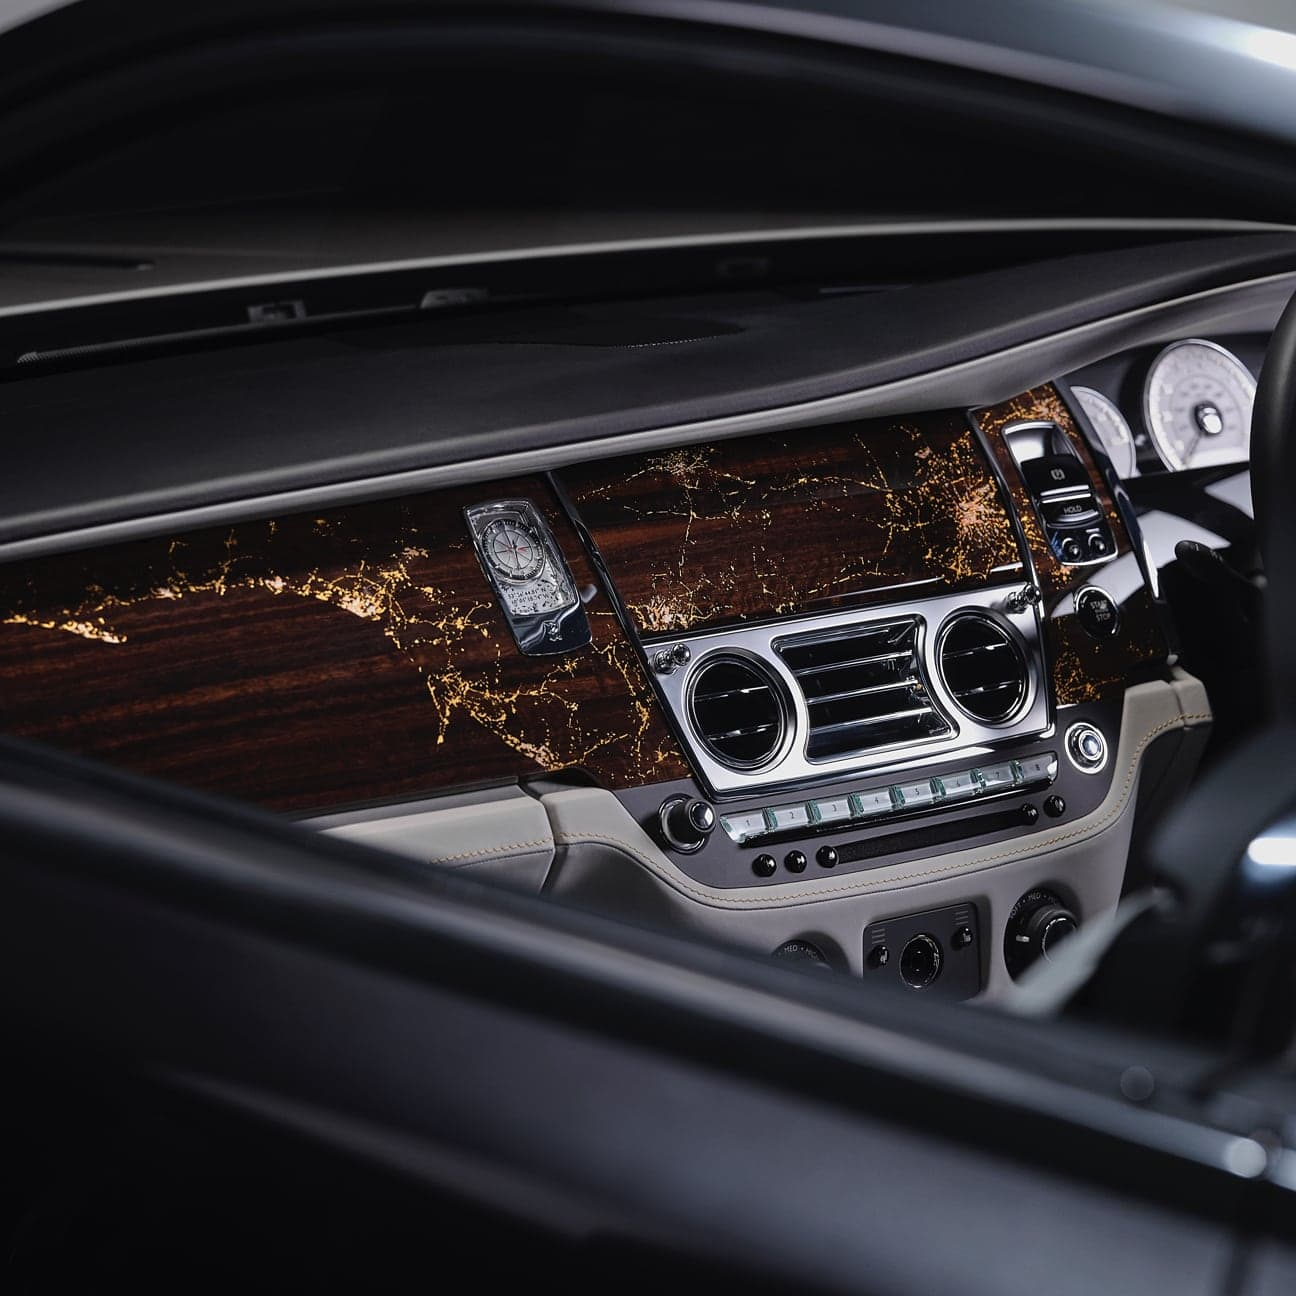 Choose from our exclusive collections or collaborate with our craftspeople and designers to create a Rolls-Royce wholly unique to you. This is Rolls-Royce Bespoke.